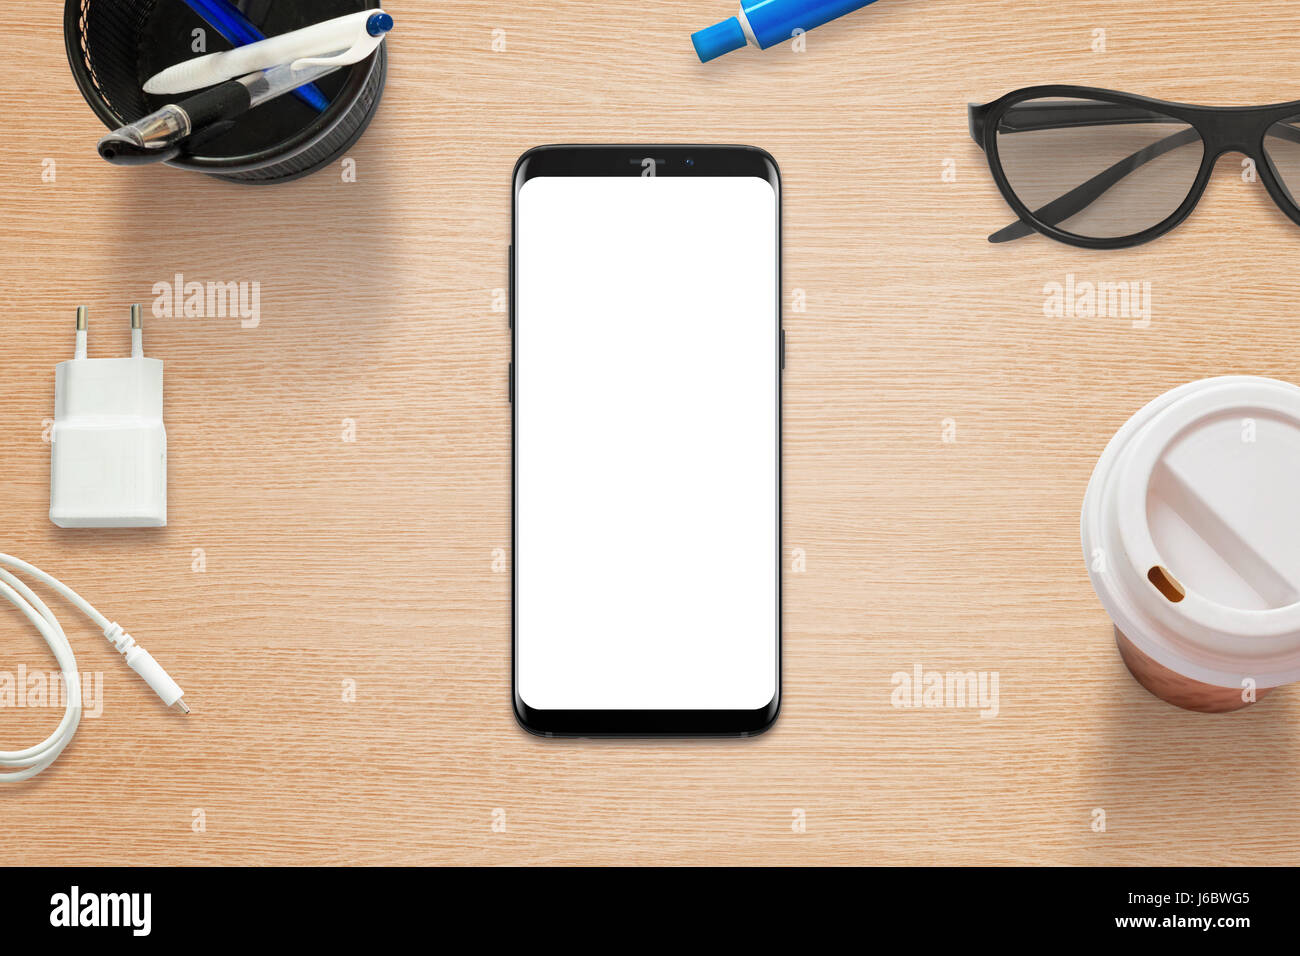 Mobile Coffee Table.Modern Mobile Phone On Table With Isolated Screen Coffee Glasses